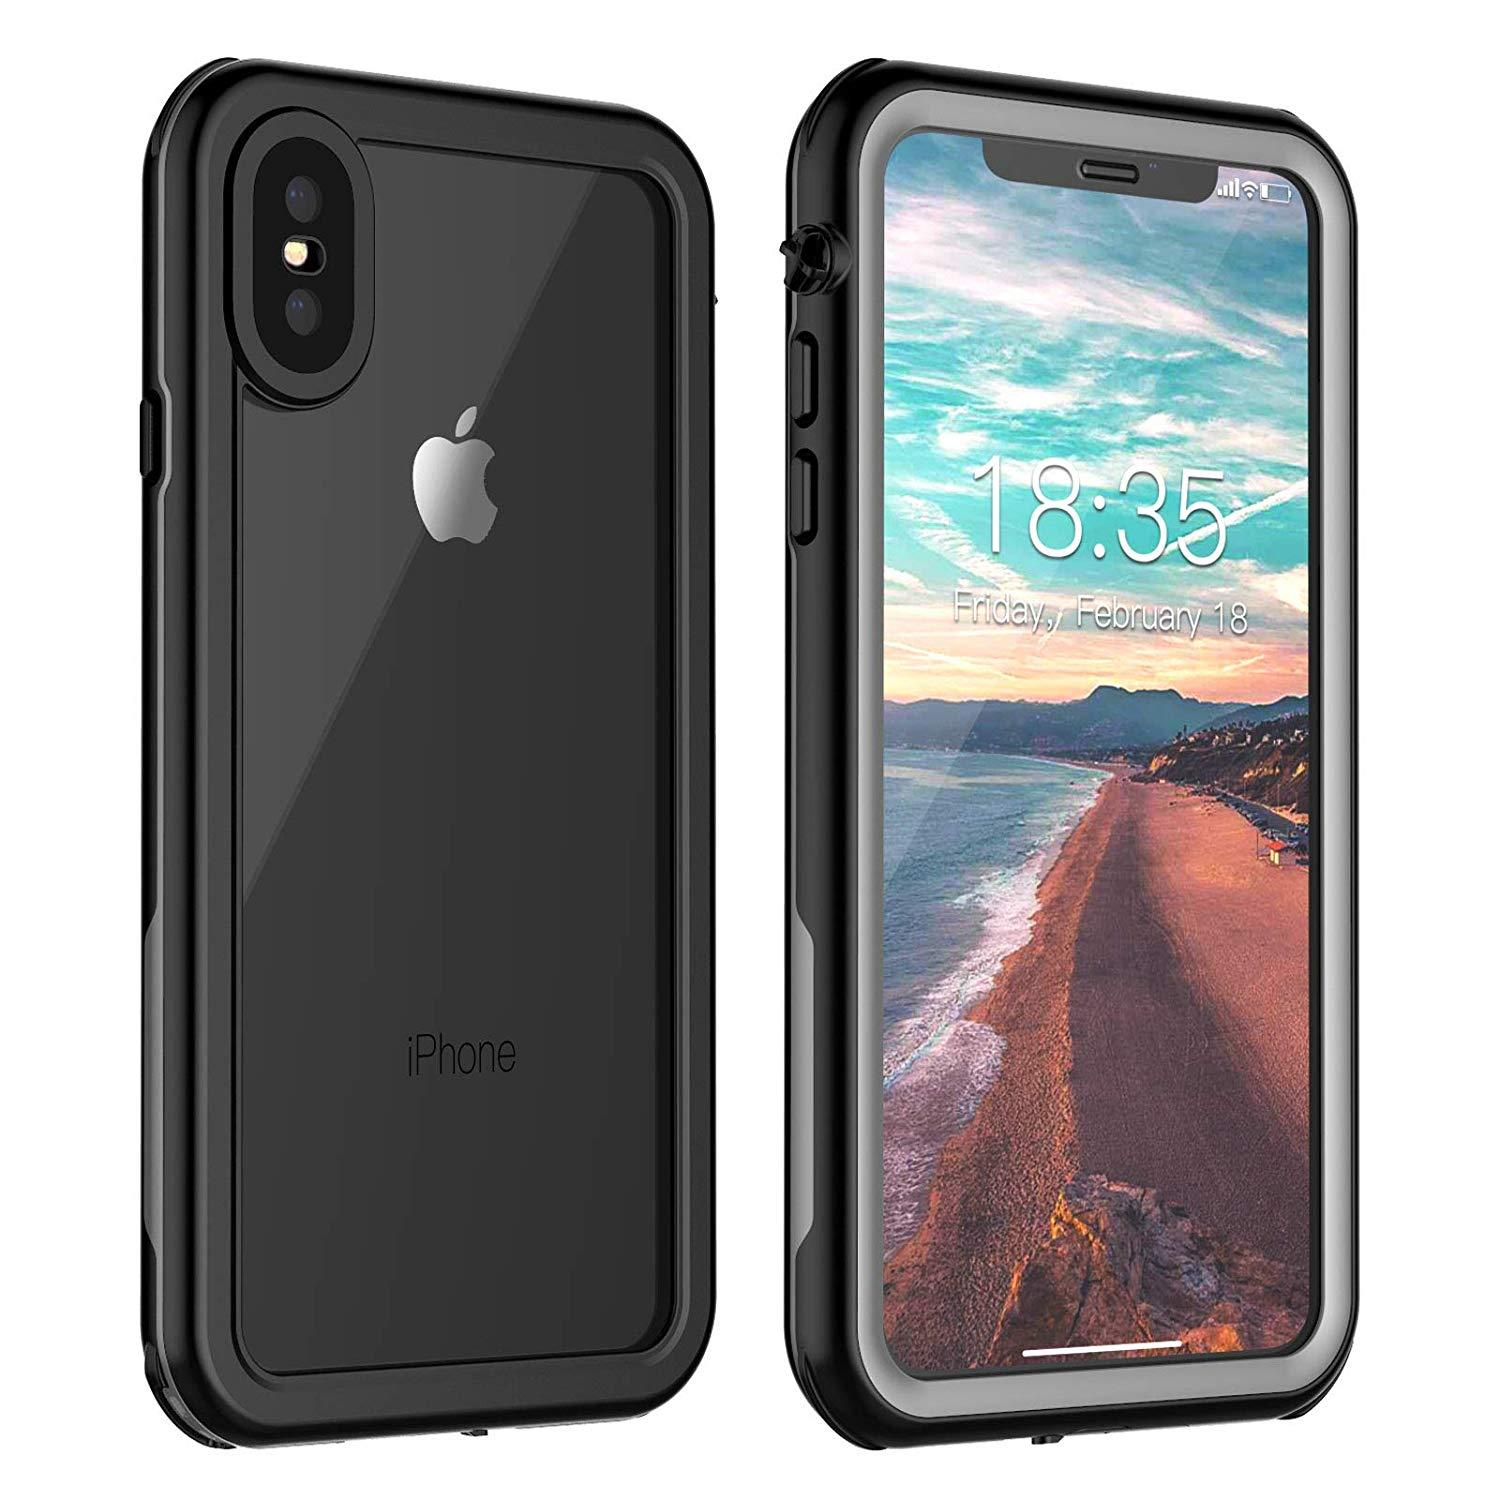 separation shoes f702f deded For iPhone Xs Max Waterproof Case,Full Body Rugged Armor Cover Case  Built-in Screen Protector,Dustproof Shockproof Case iPhone Xs Max 6.5